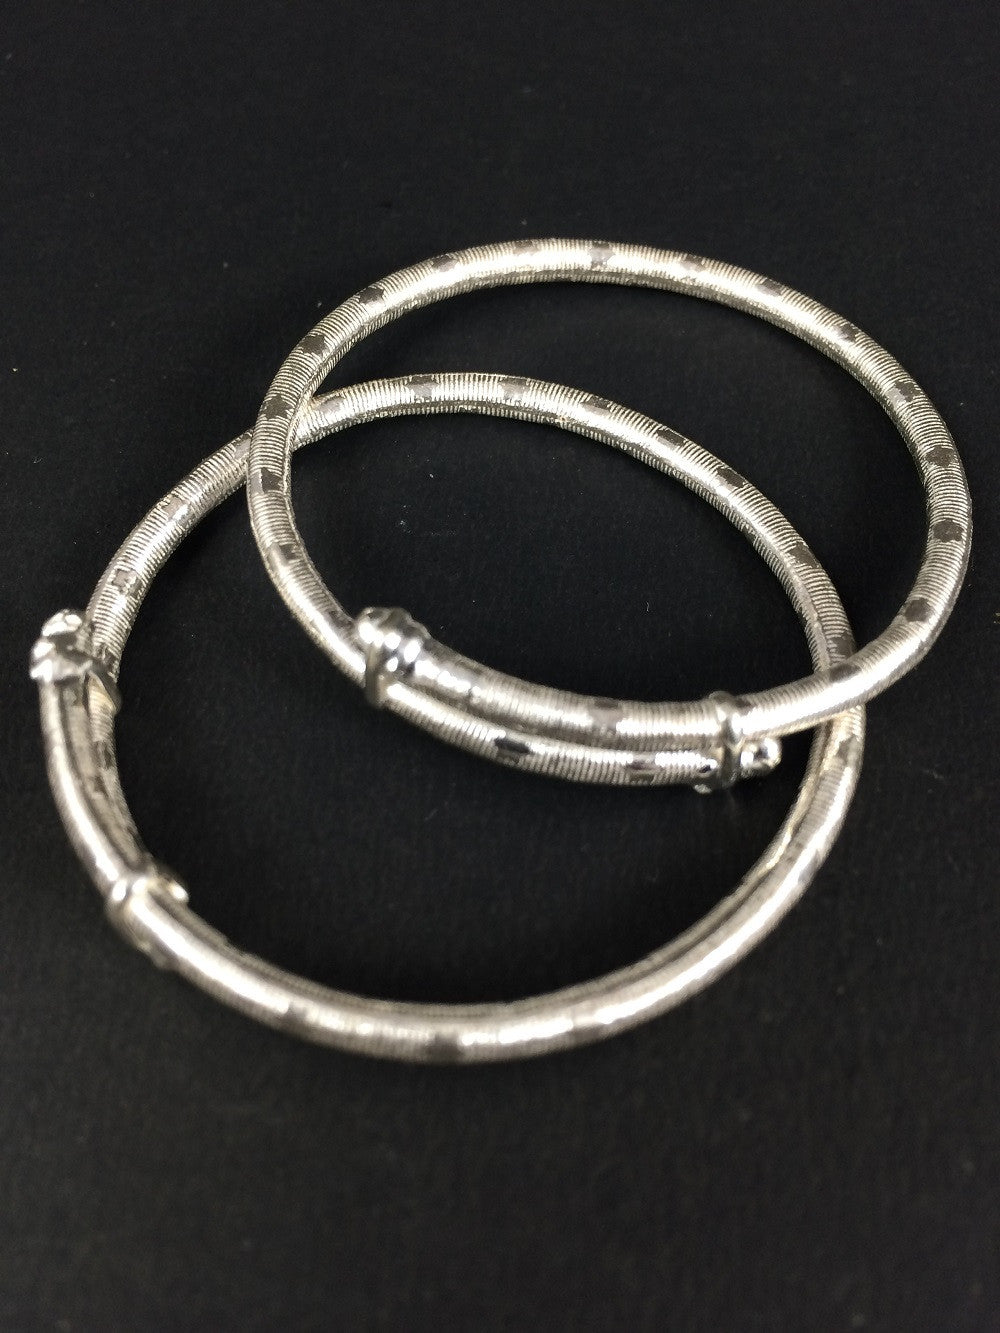 and wholesale silver product detail design flower bangles adjustable sterling buy wire latest bracelet